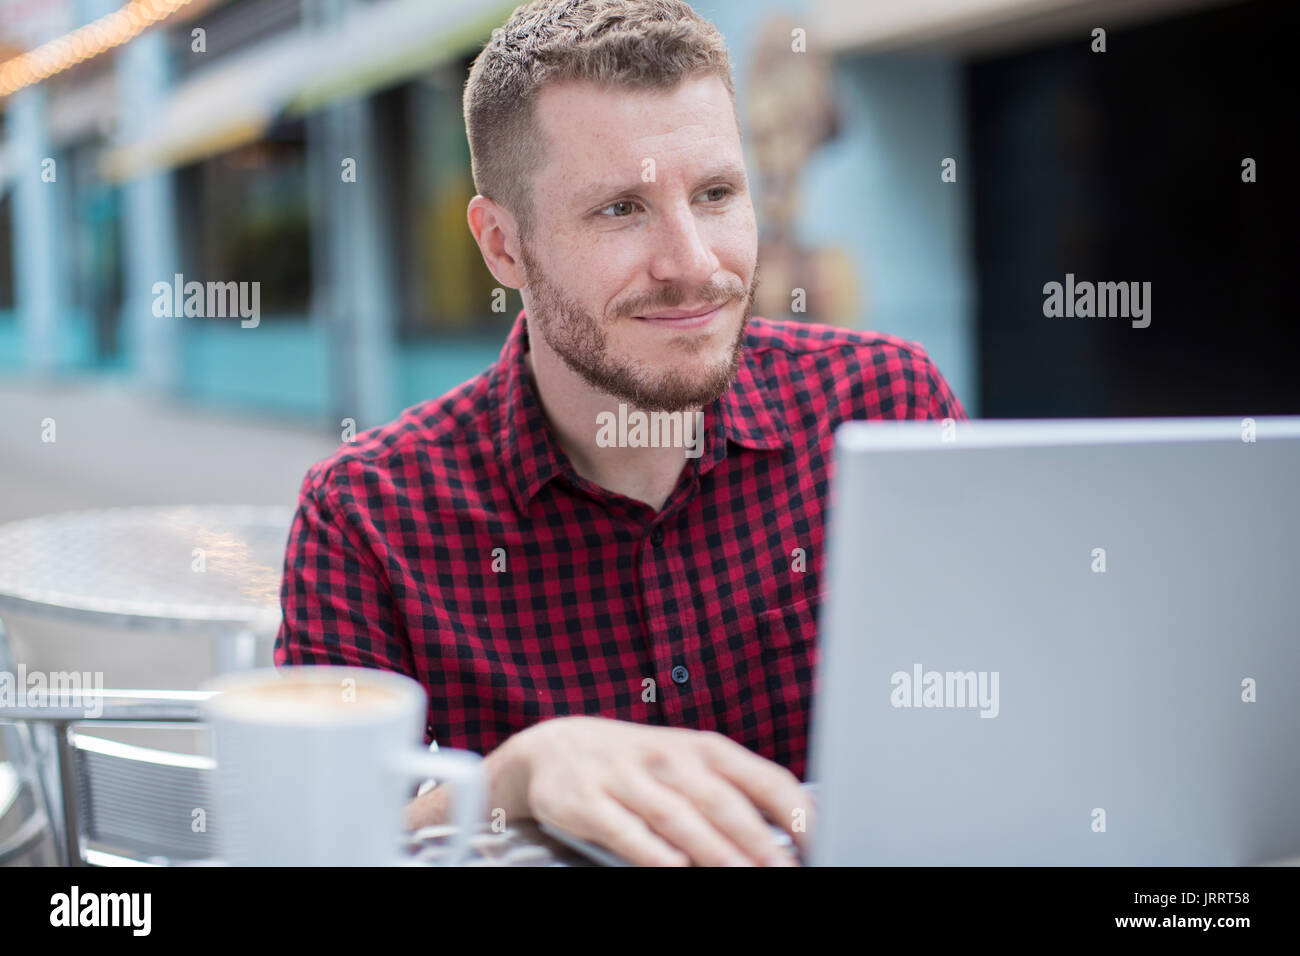 Young Man At Outdoor Cafe Working On Laptop - Stock Image